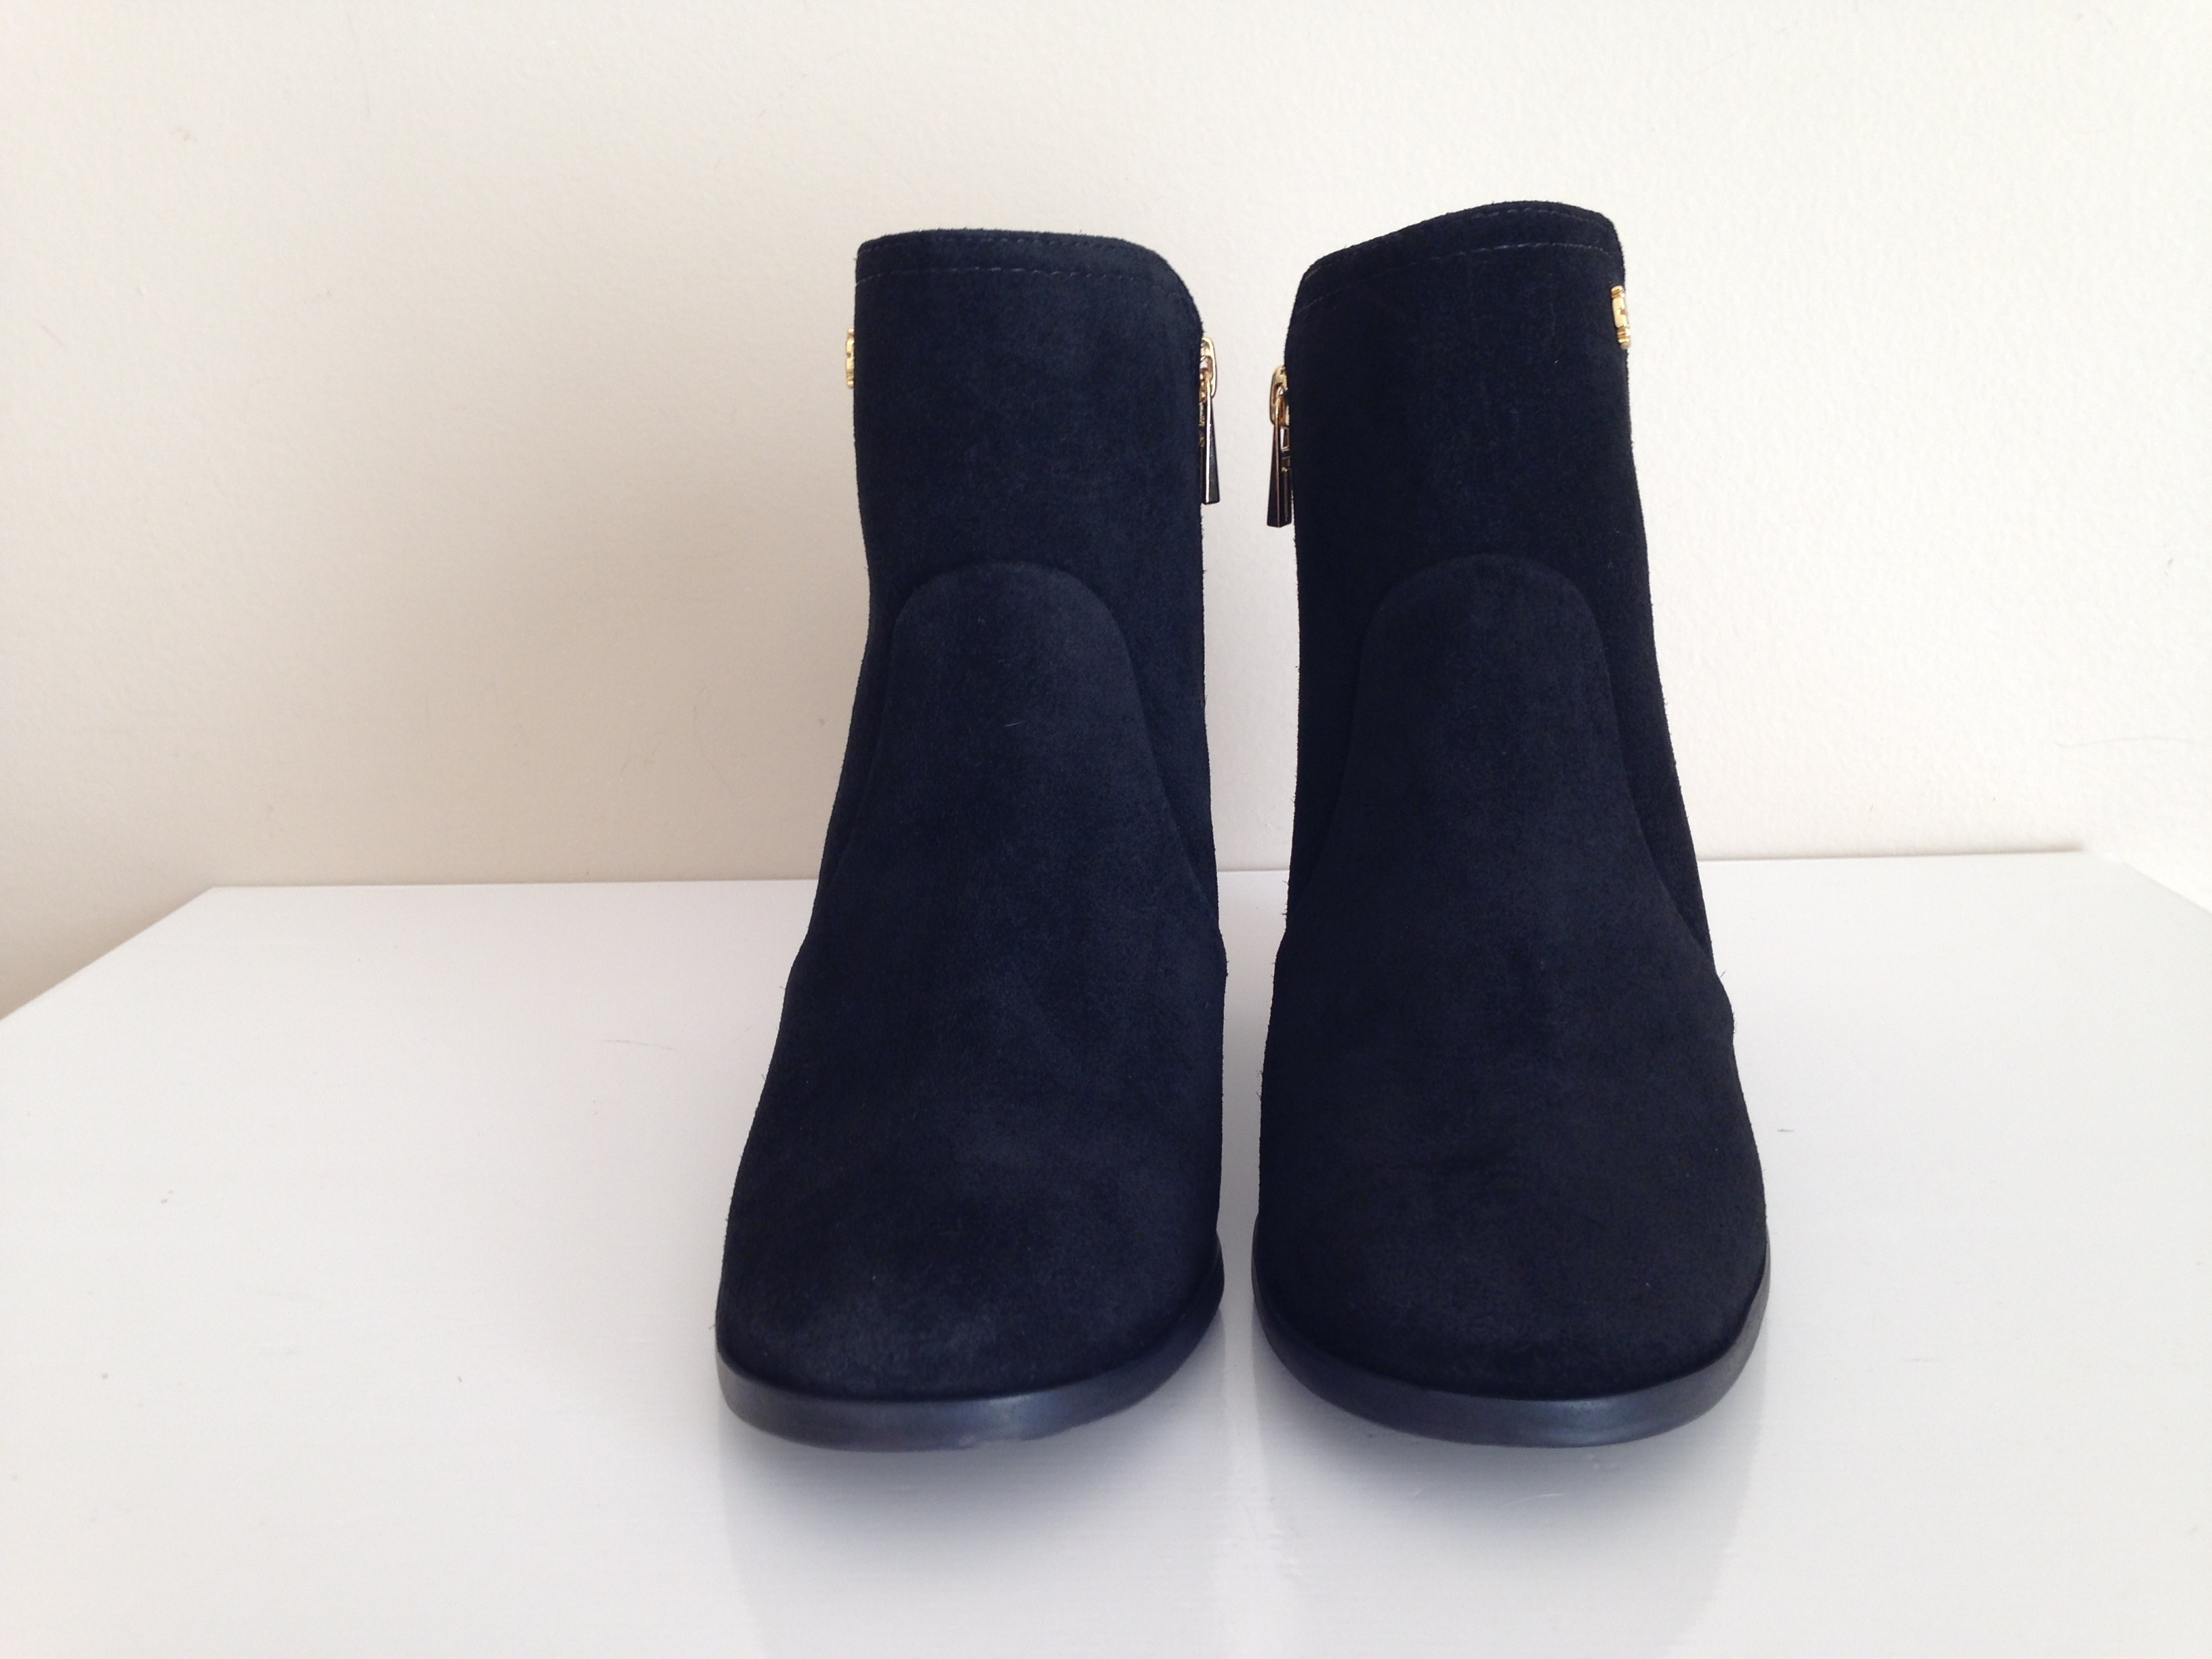 TORY BURCH SABE 65mm BOOTIE お買い得, 即発送